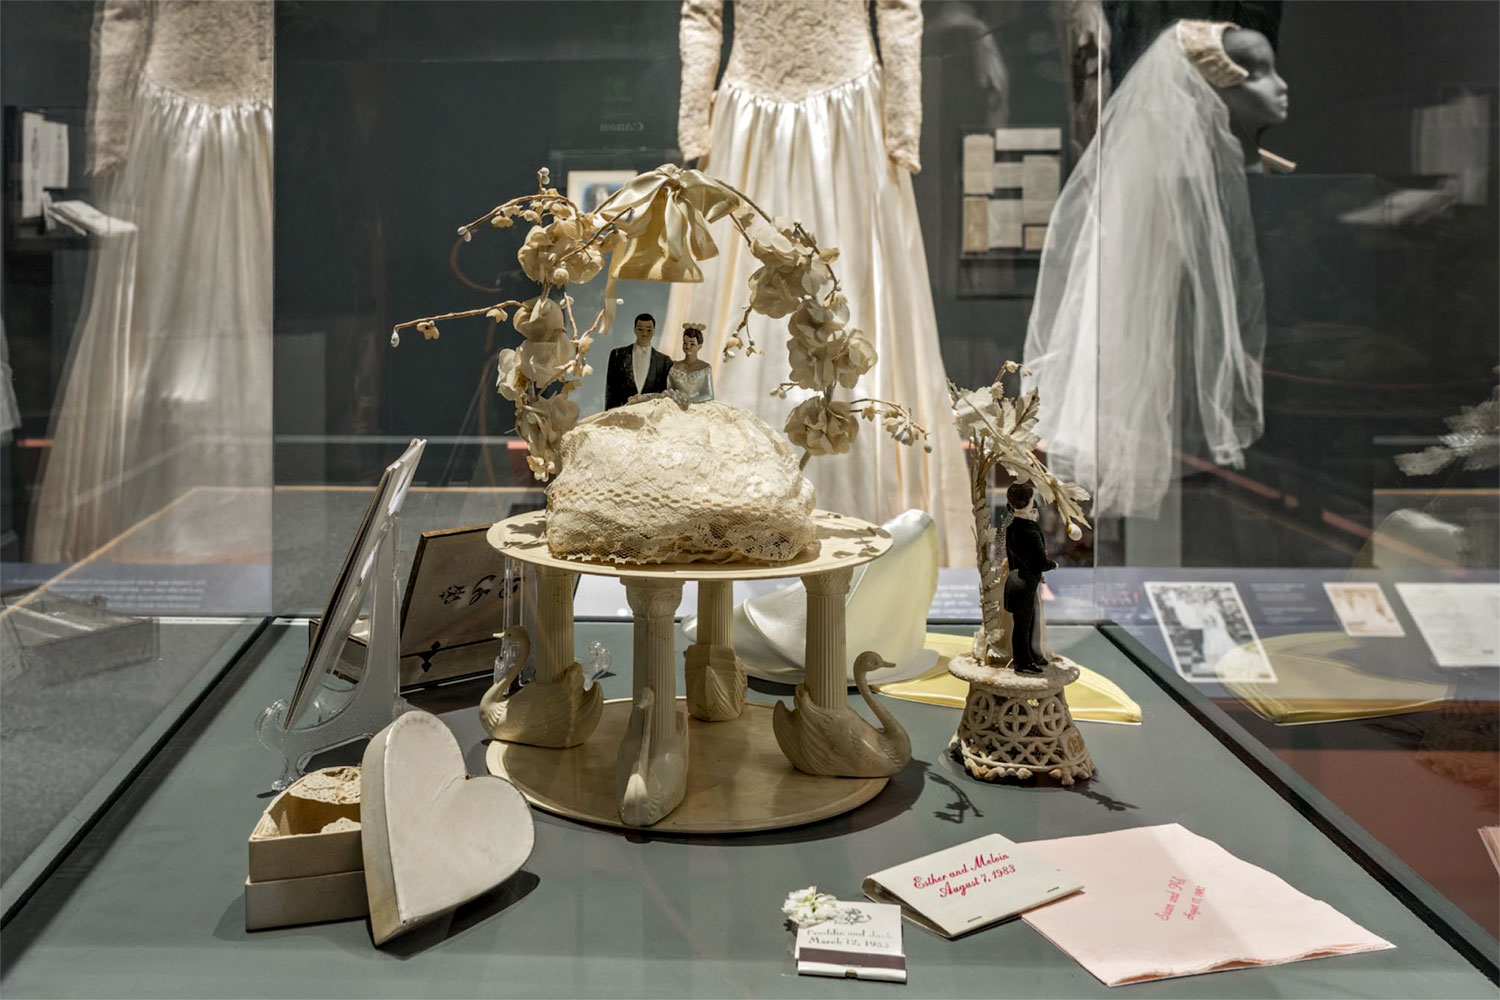 Just Married exhibition objects